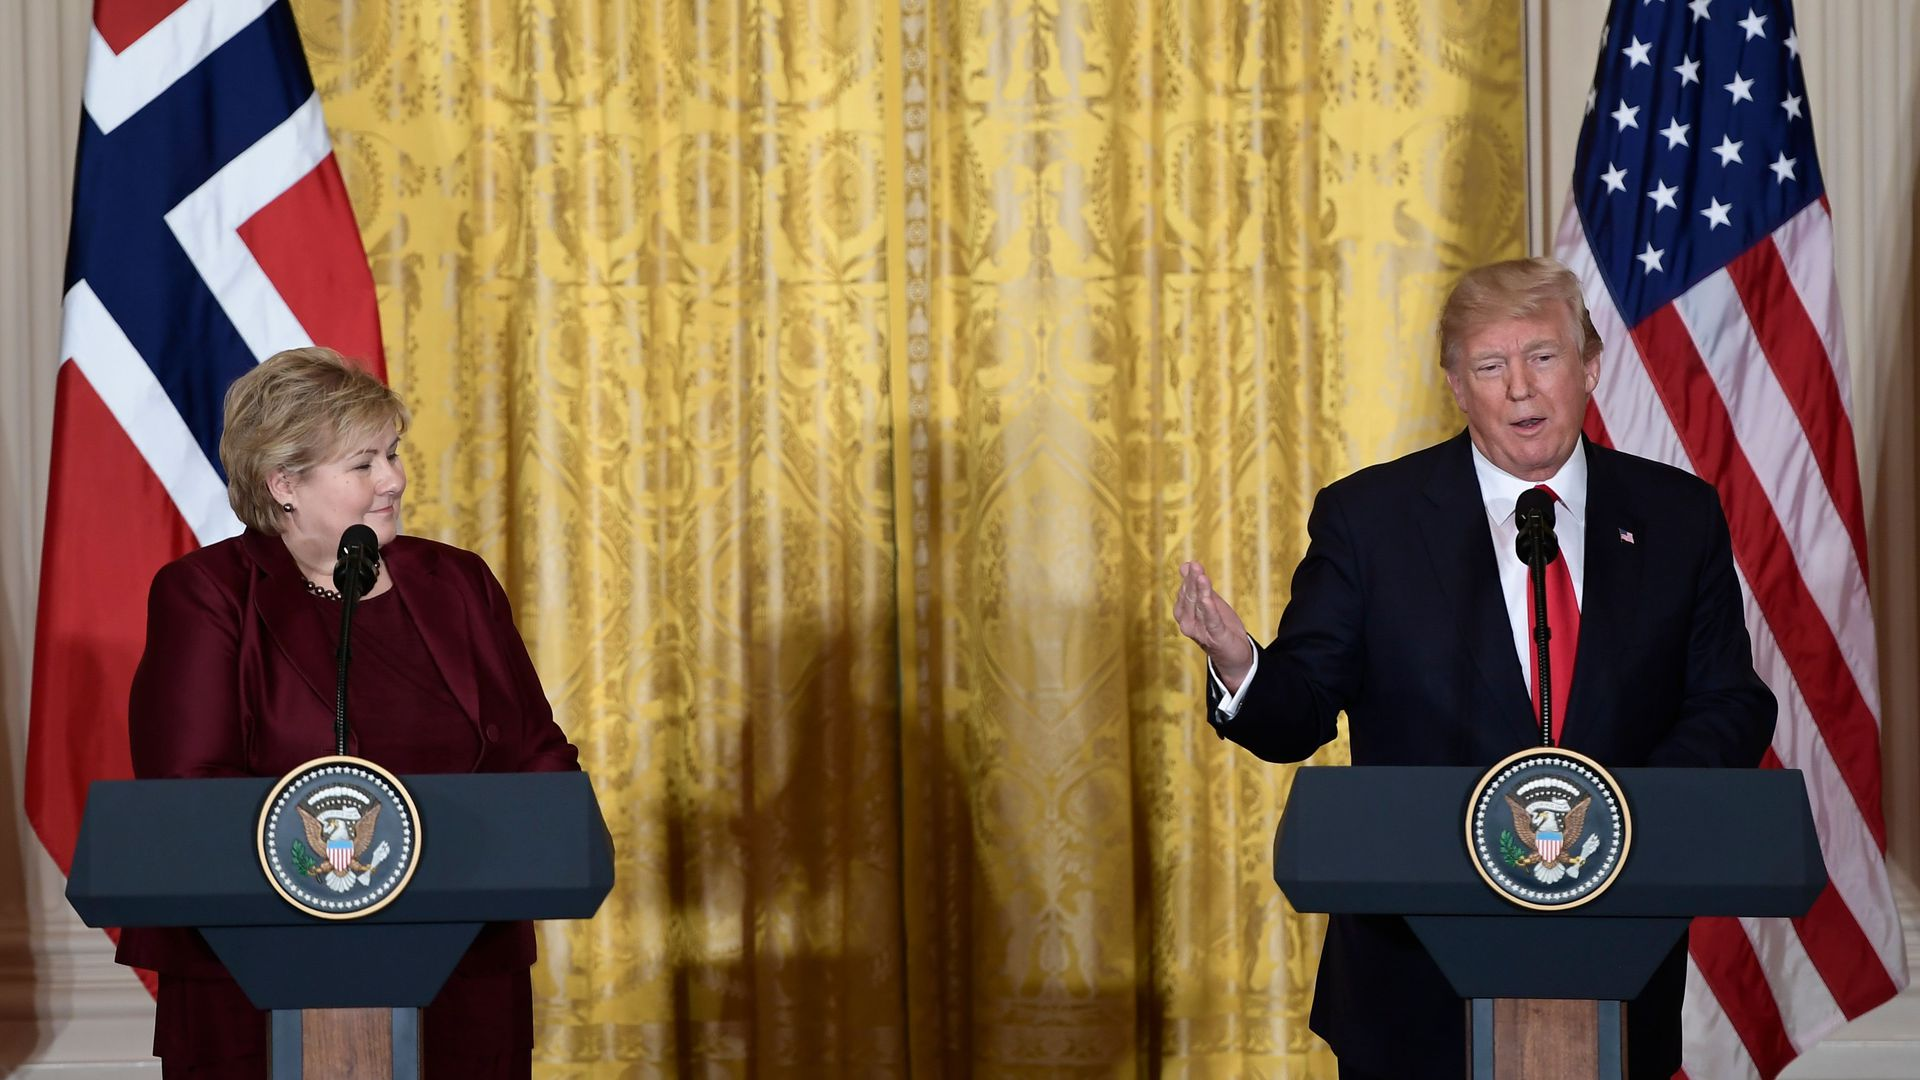 Trump and Erna Solberg